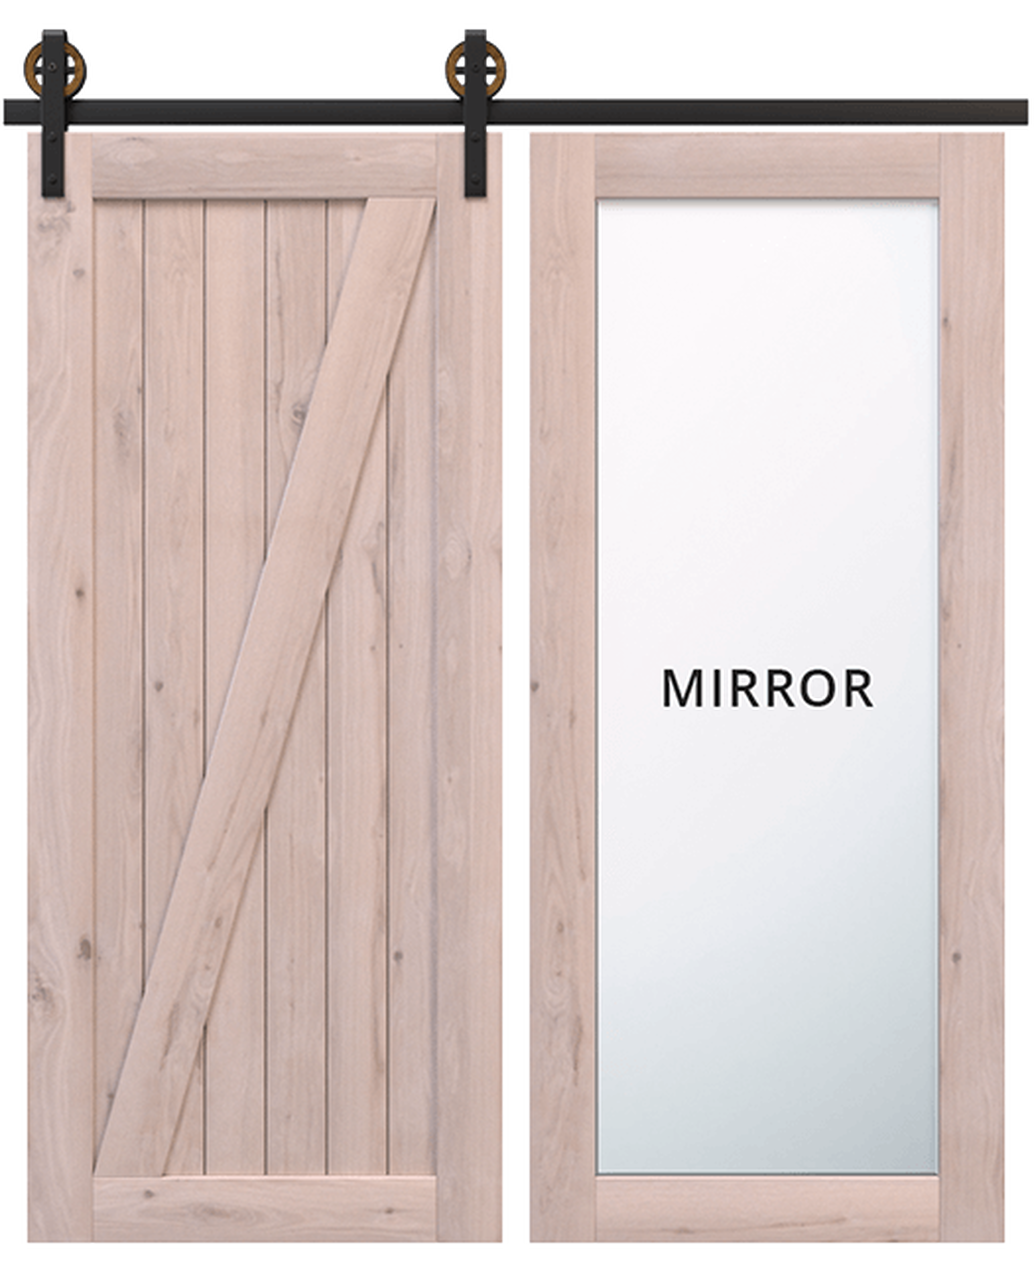 juneau wood full pane mirror unfinished wood classic z barn door